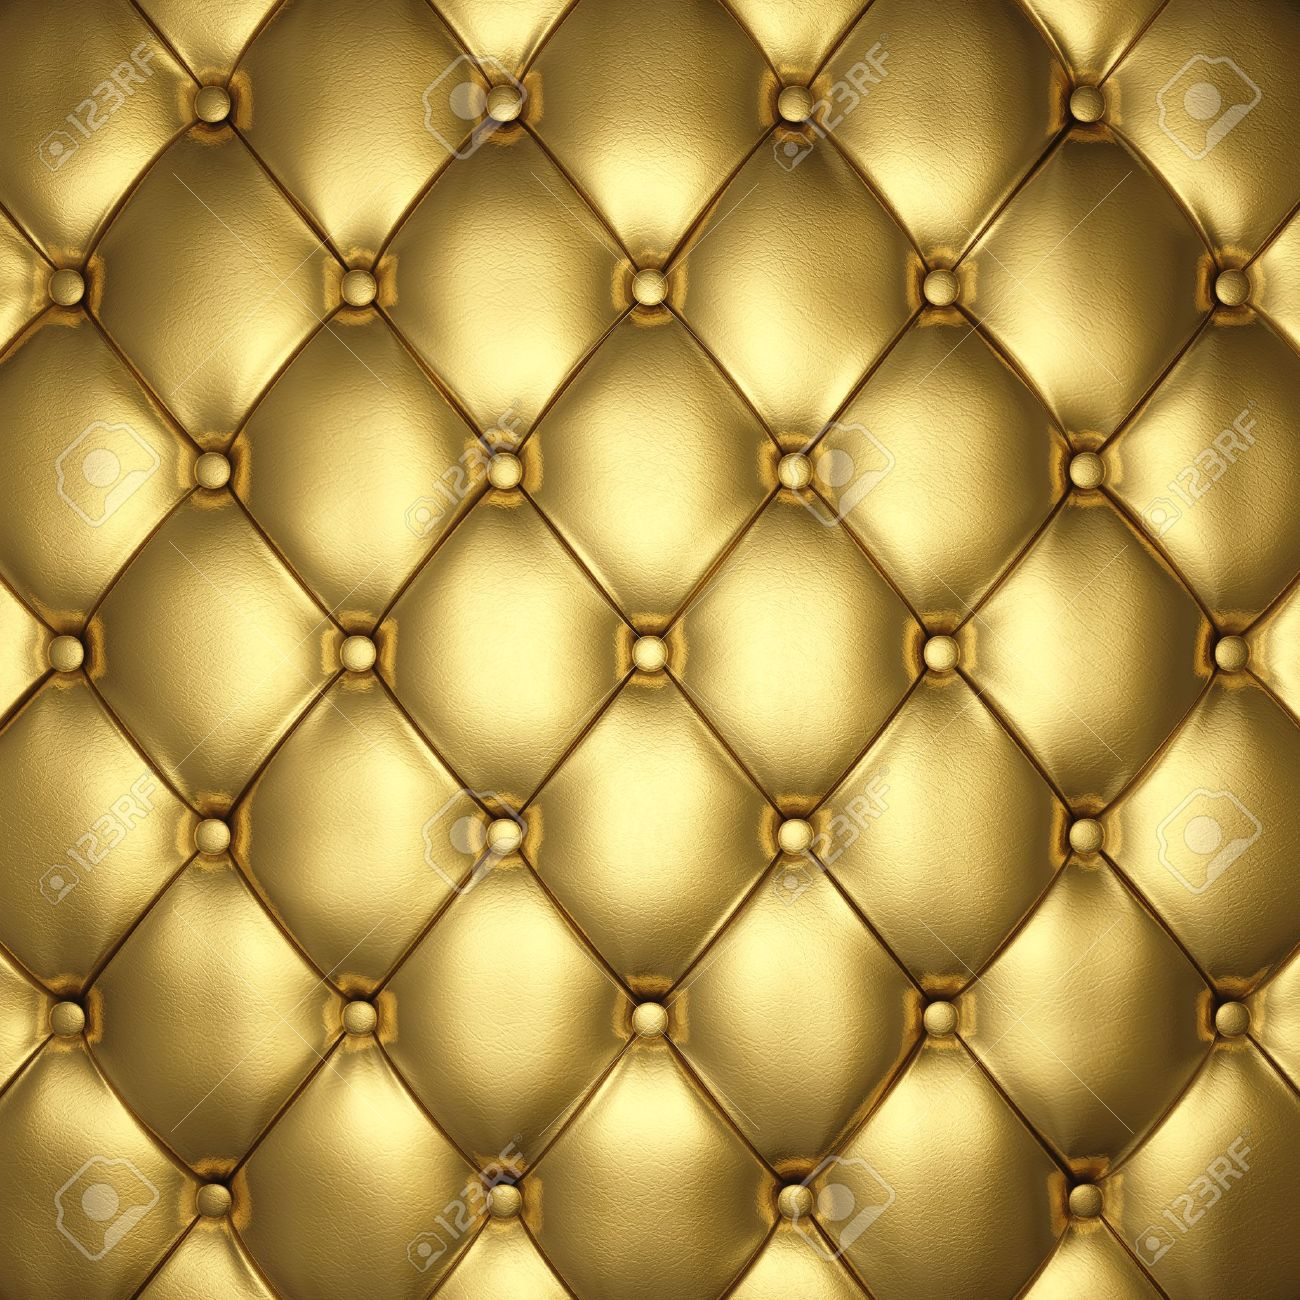 Leather cushion texture - Gold Leather Upholstery 3d Illustration Stock Illustration 15419171